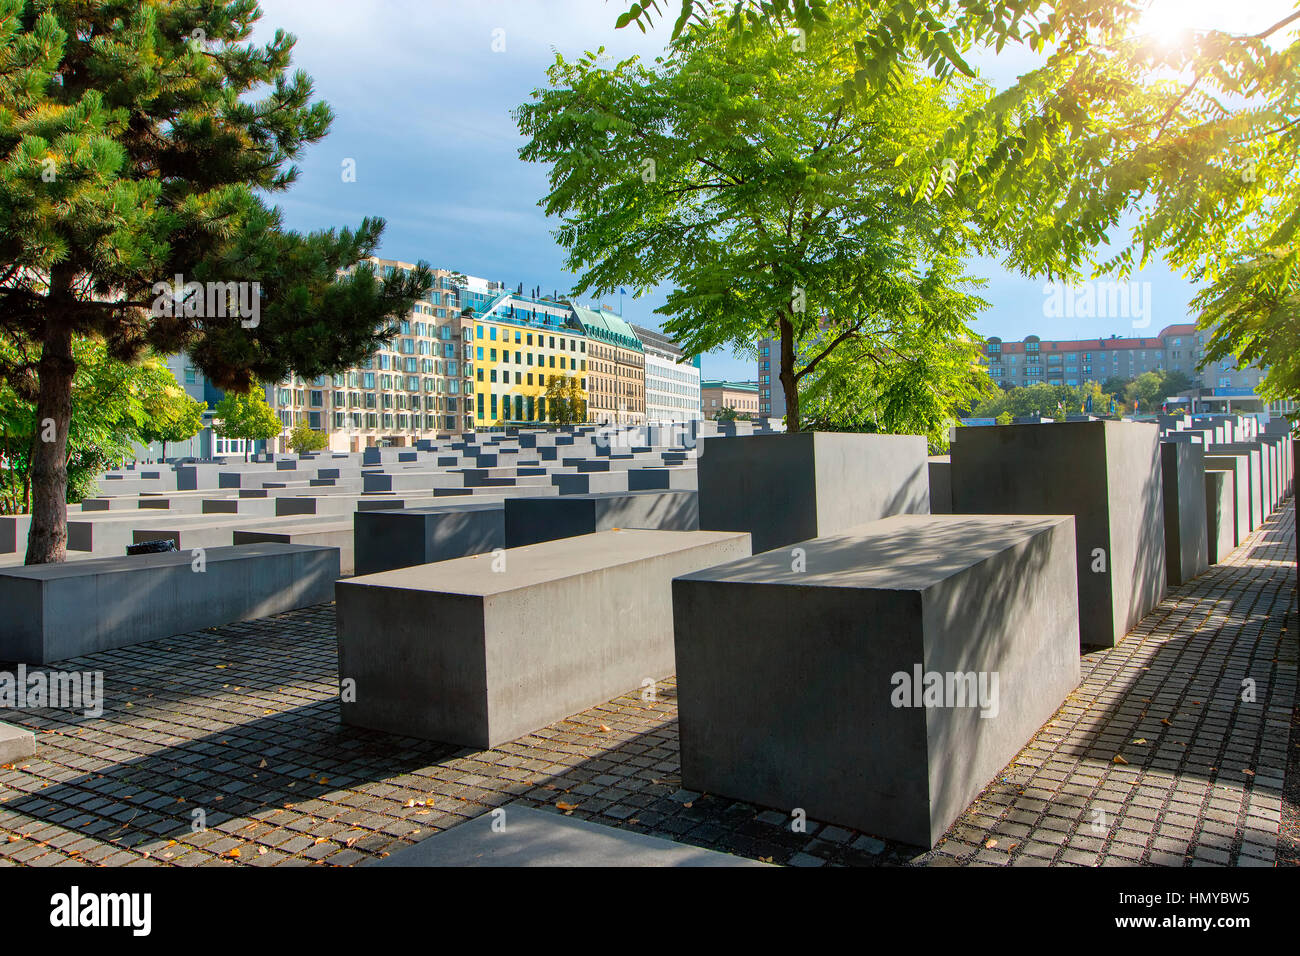 Monument to the Murdered Jews of Europe in Berlin - Stock Image